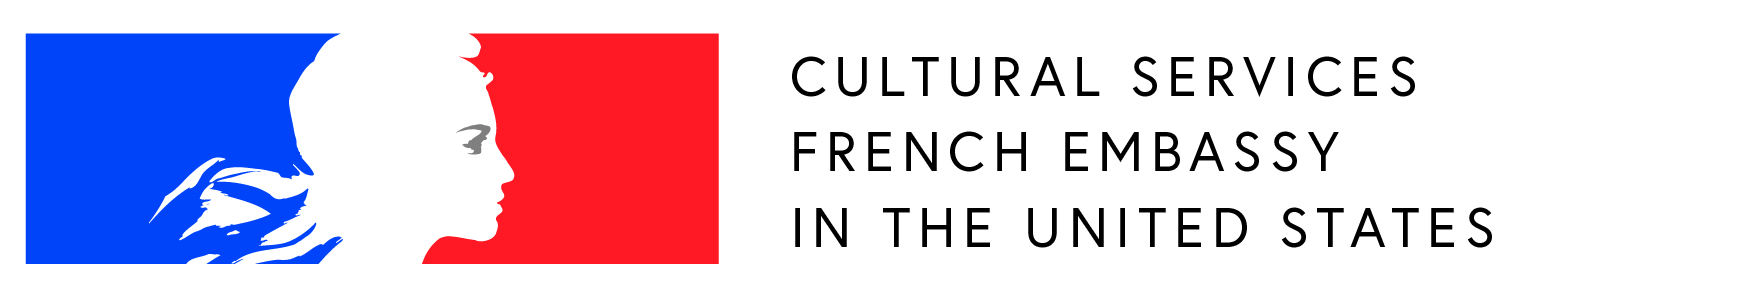 French Cultural Services Logo.jpg